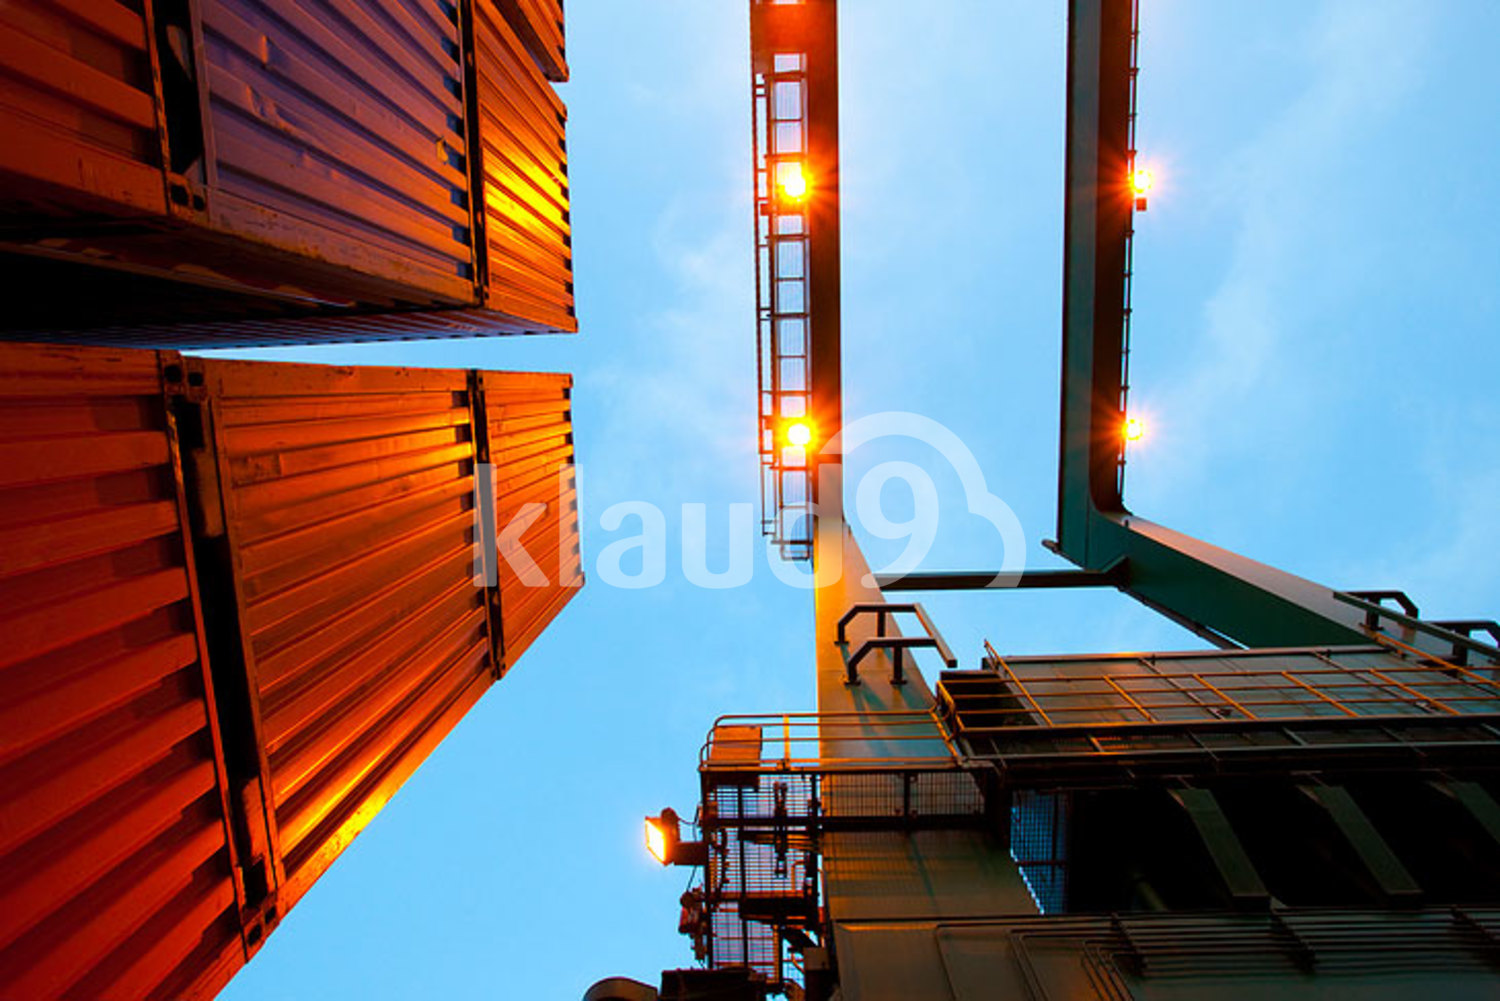 Bottom view of cranes and stack of cargo containers